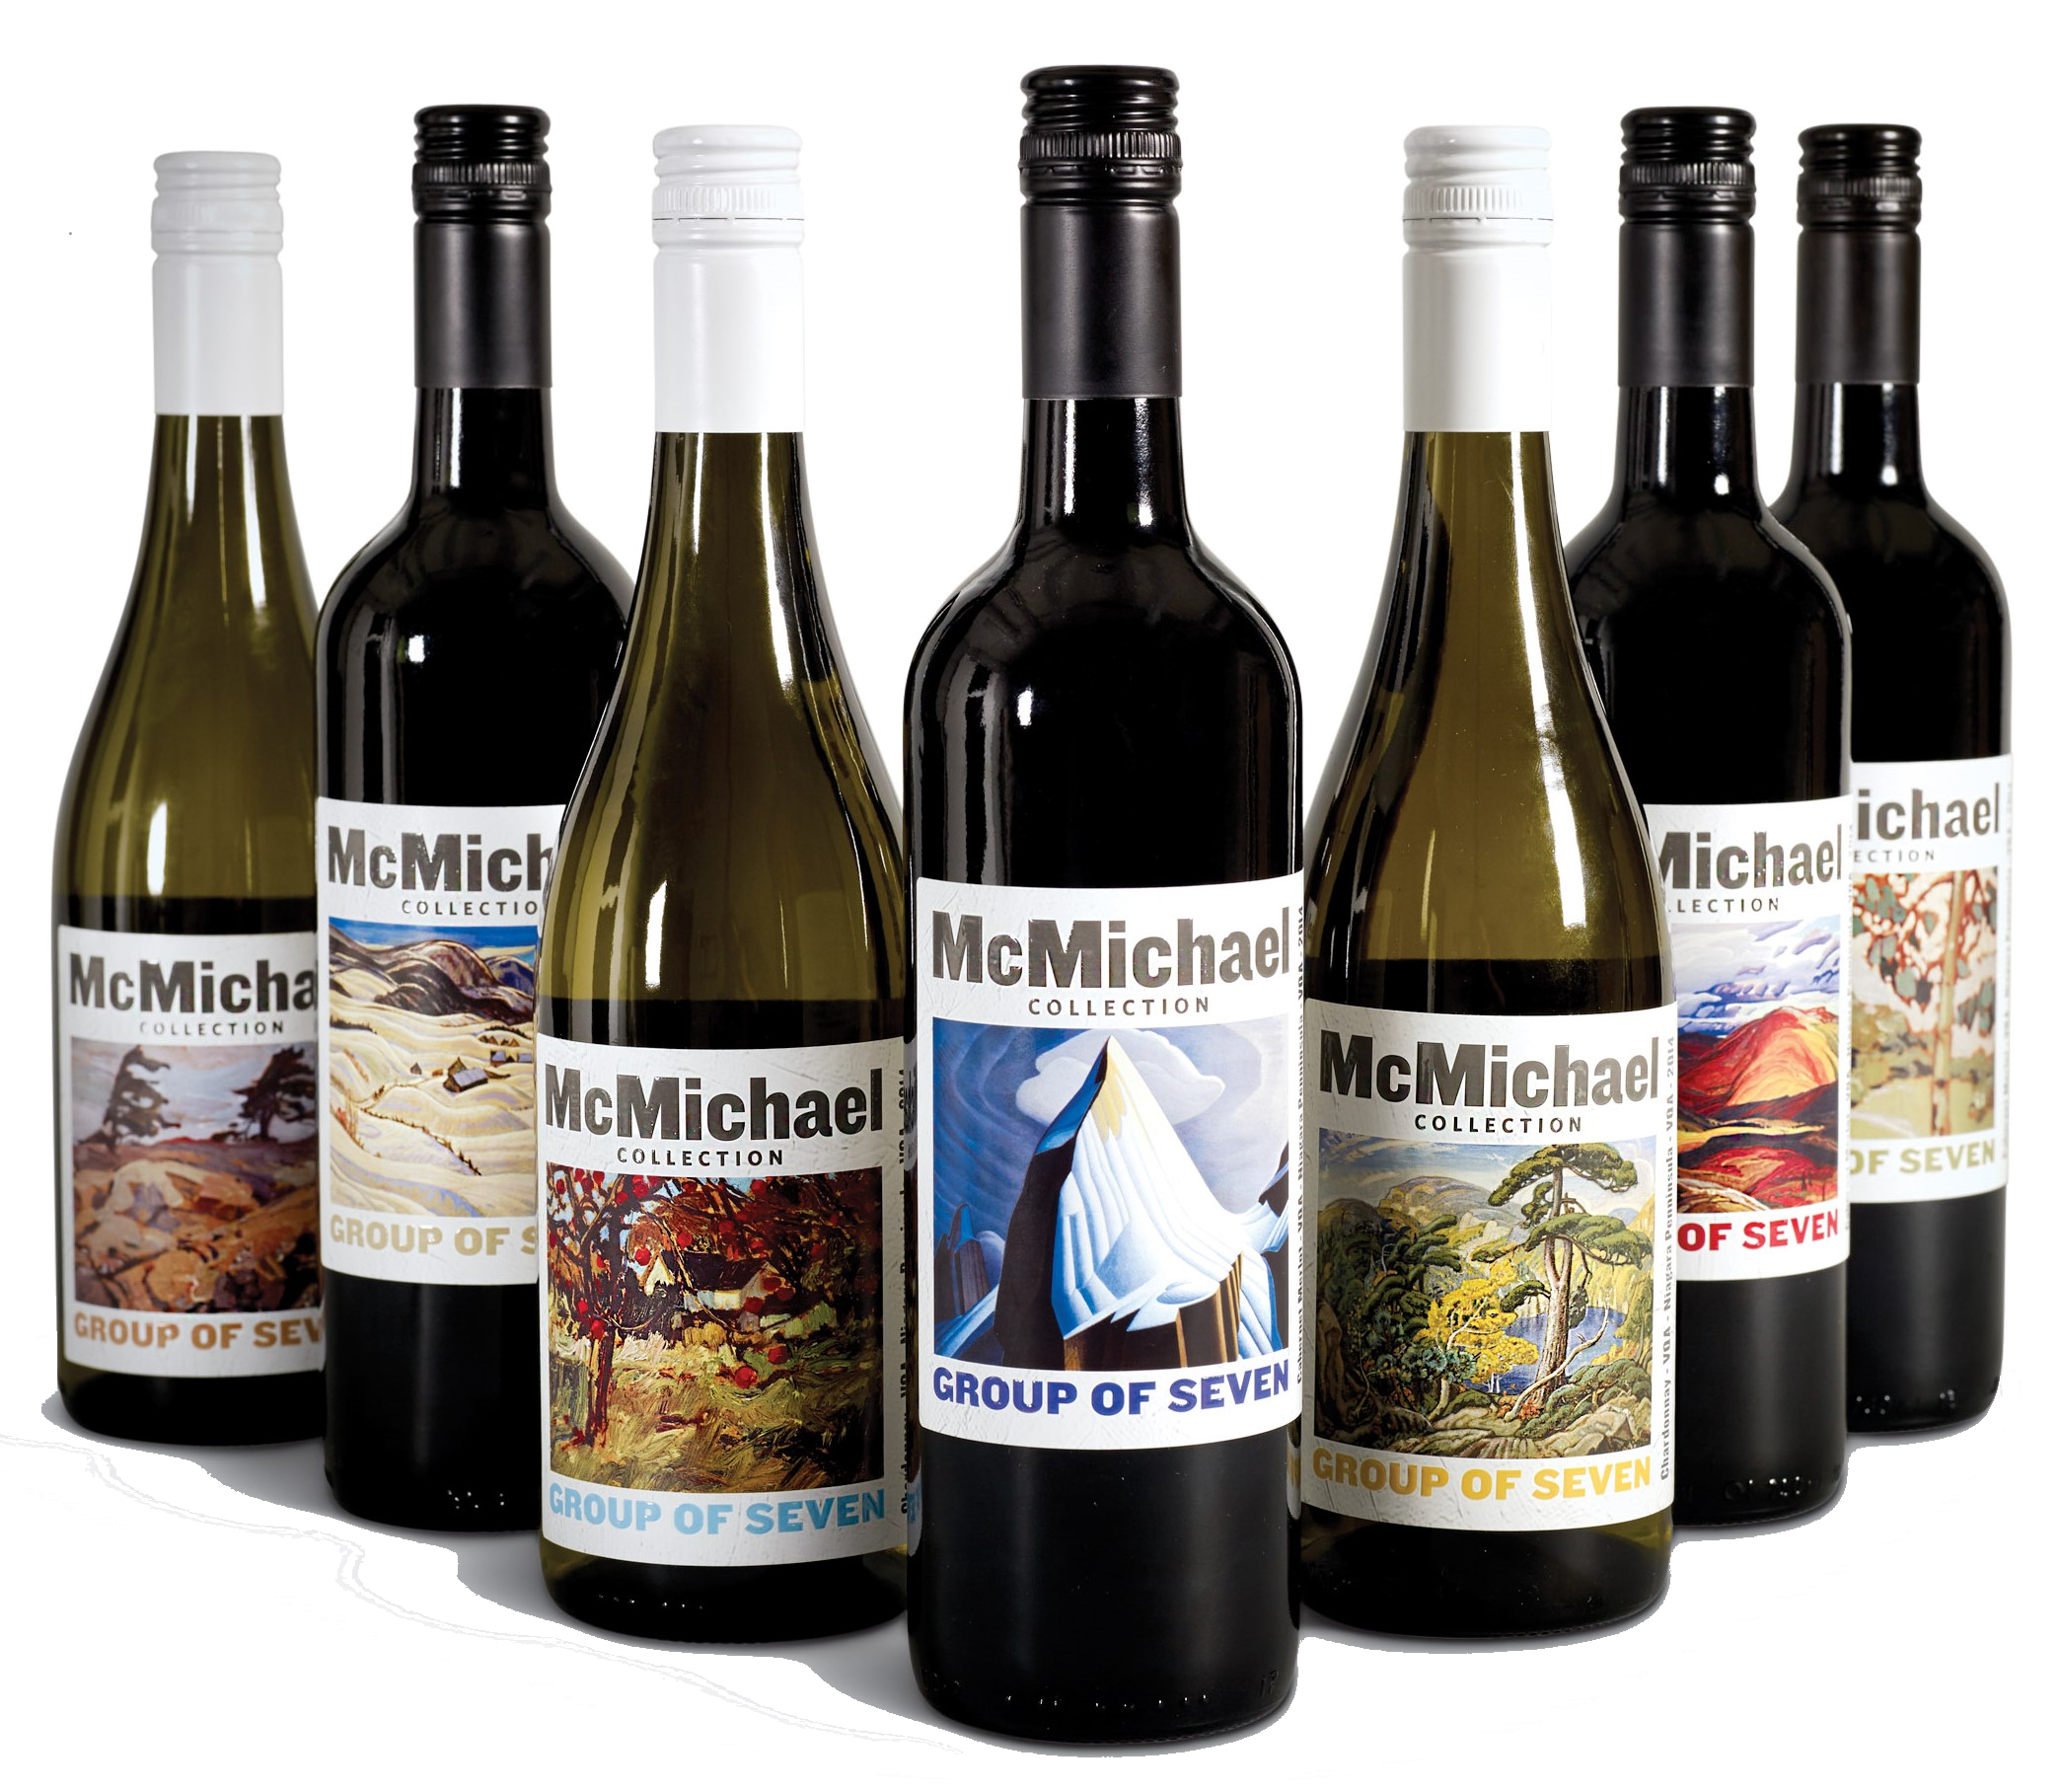 McMichael Collection Wines